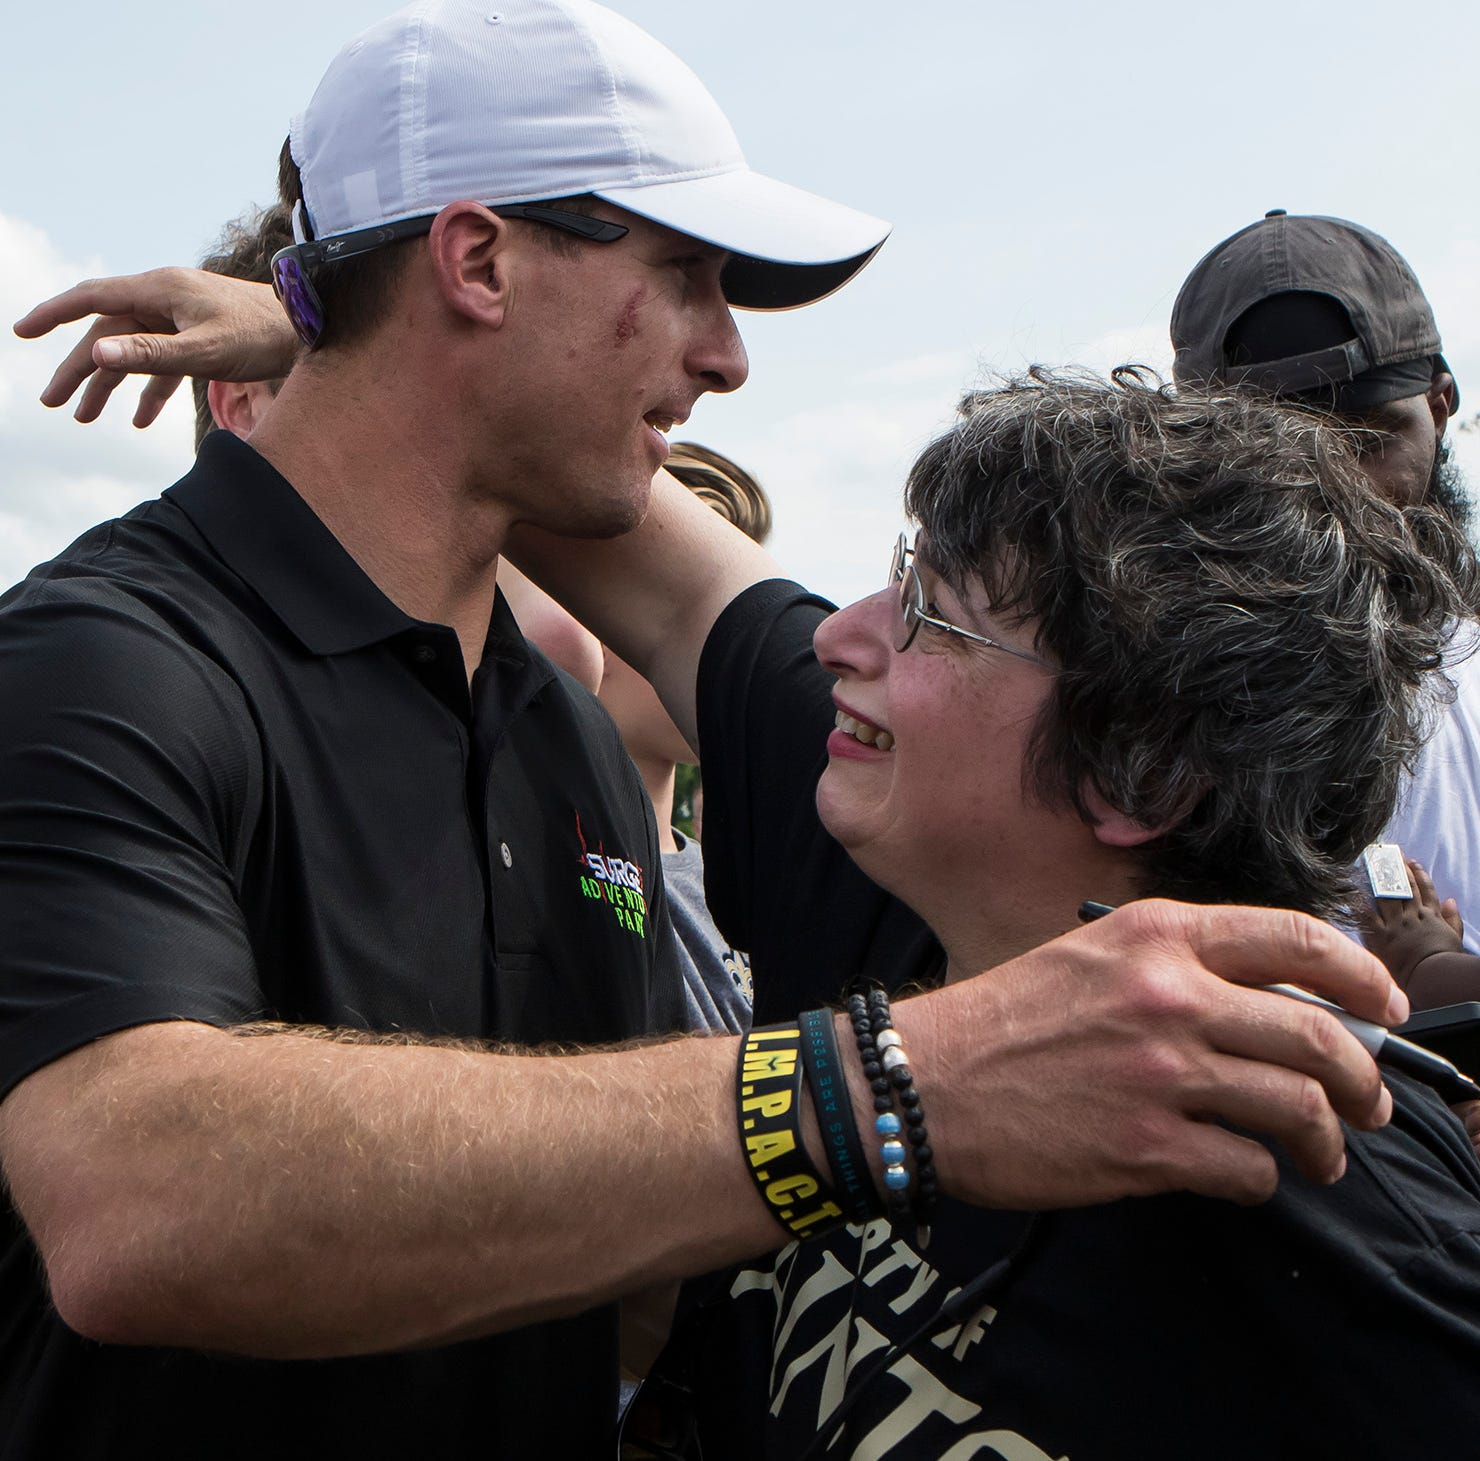 North Louisiana's Who Dats welcome Brees to West Monroe